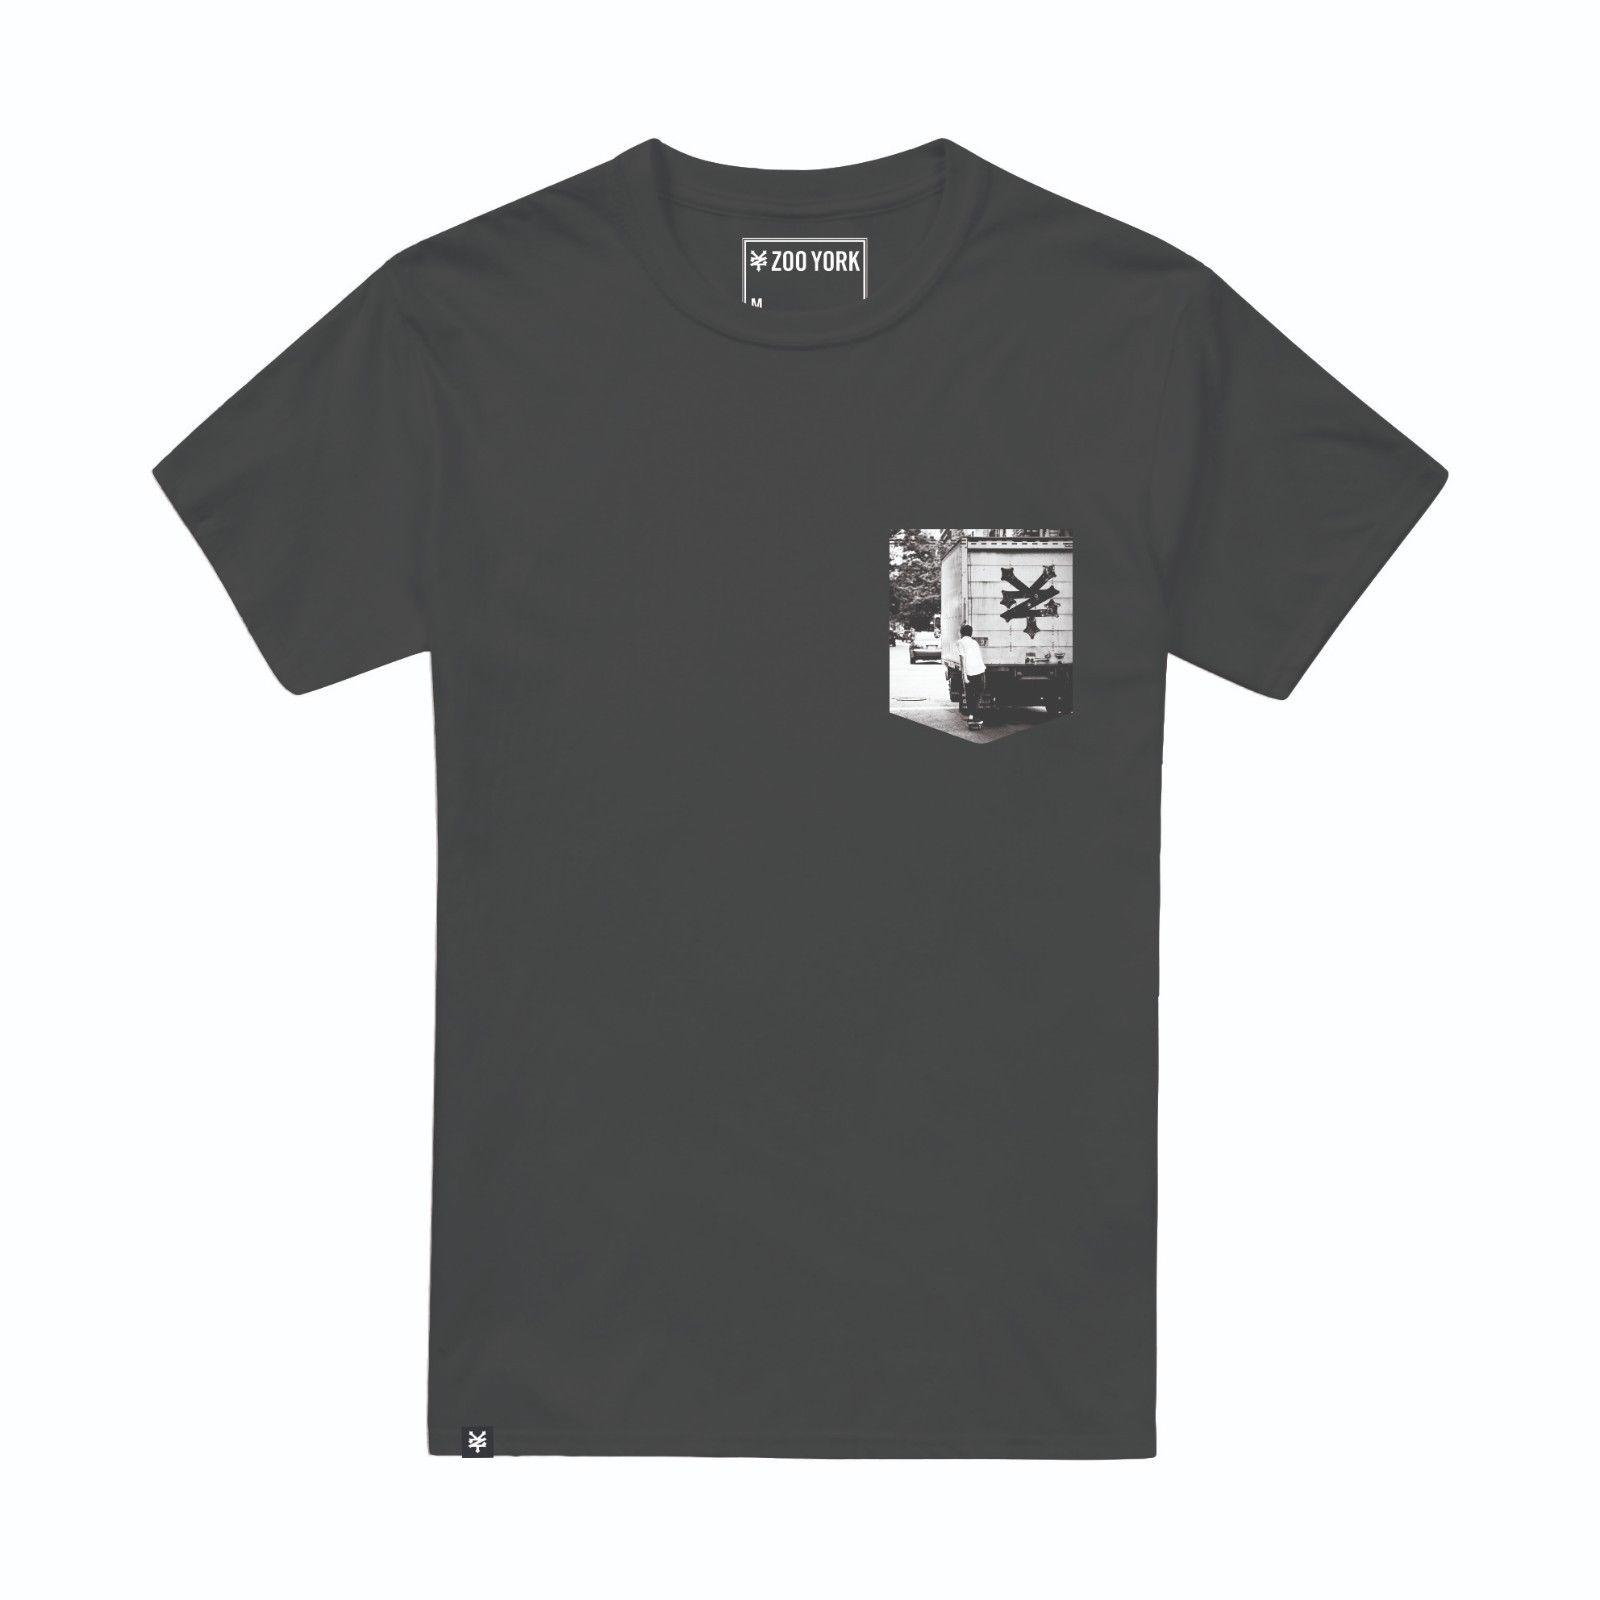 1217e46e Zoo York Mens T Shirt Pocket With Photo Black Sizes Funny Unisex Casual  Tshirt T Shirt And Shirt Shop T Shirts Online From Sillyboytshirts, $12.96|  DHgate.